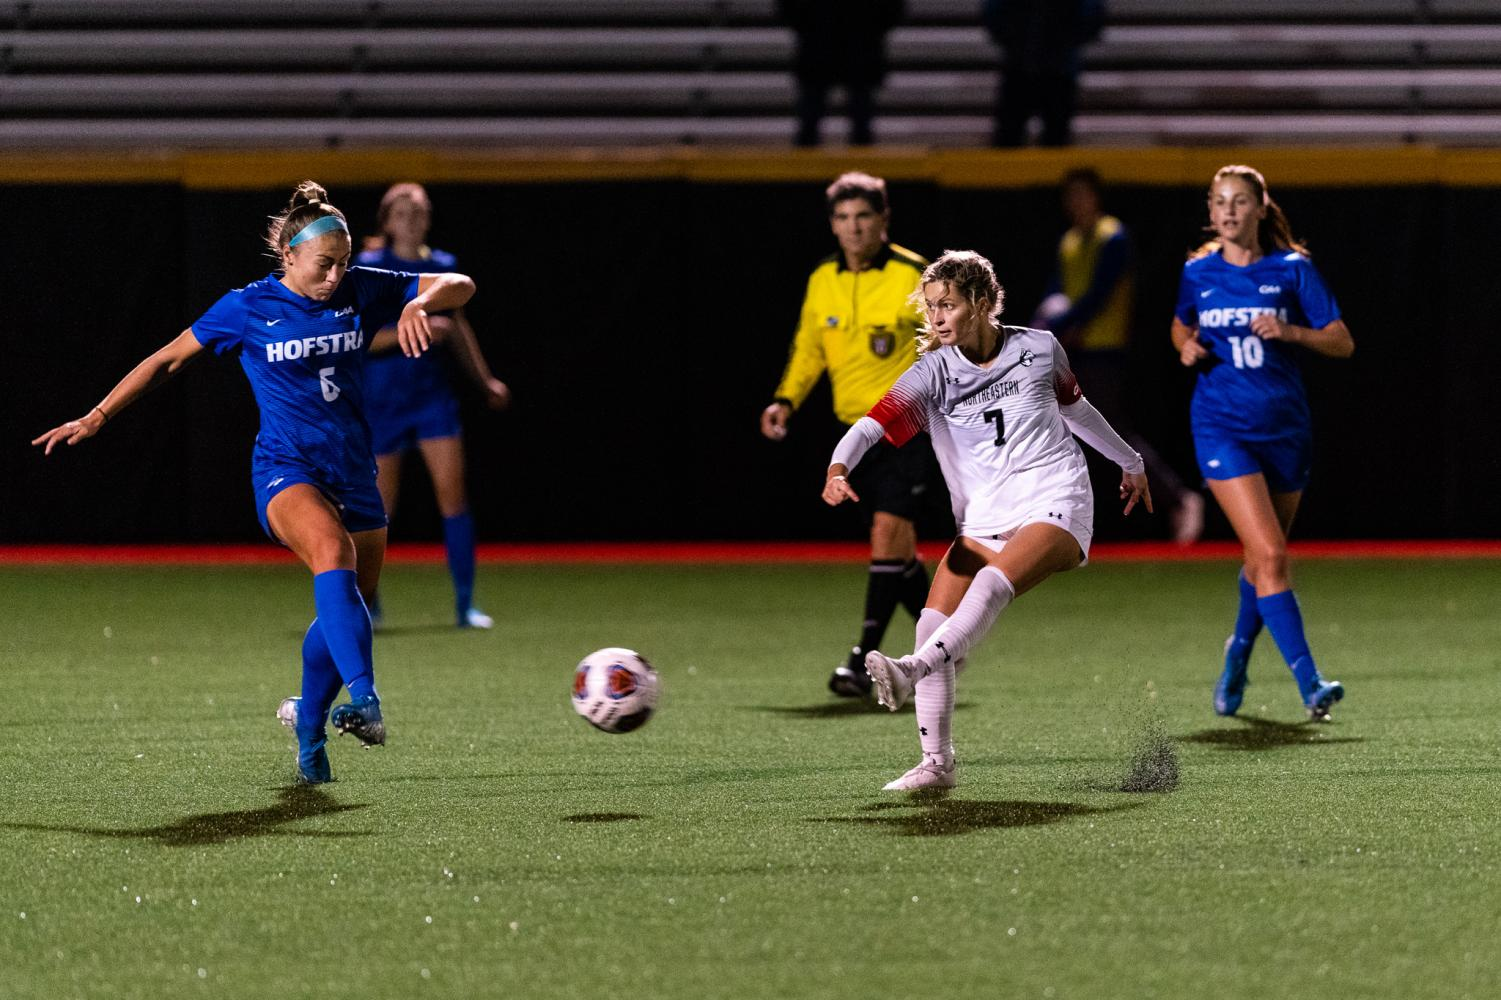 Senior midfielder Emily Evangelista lines up a pass in a game against Hofstra earlier this season.